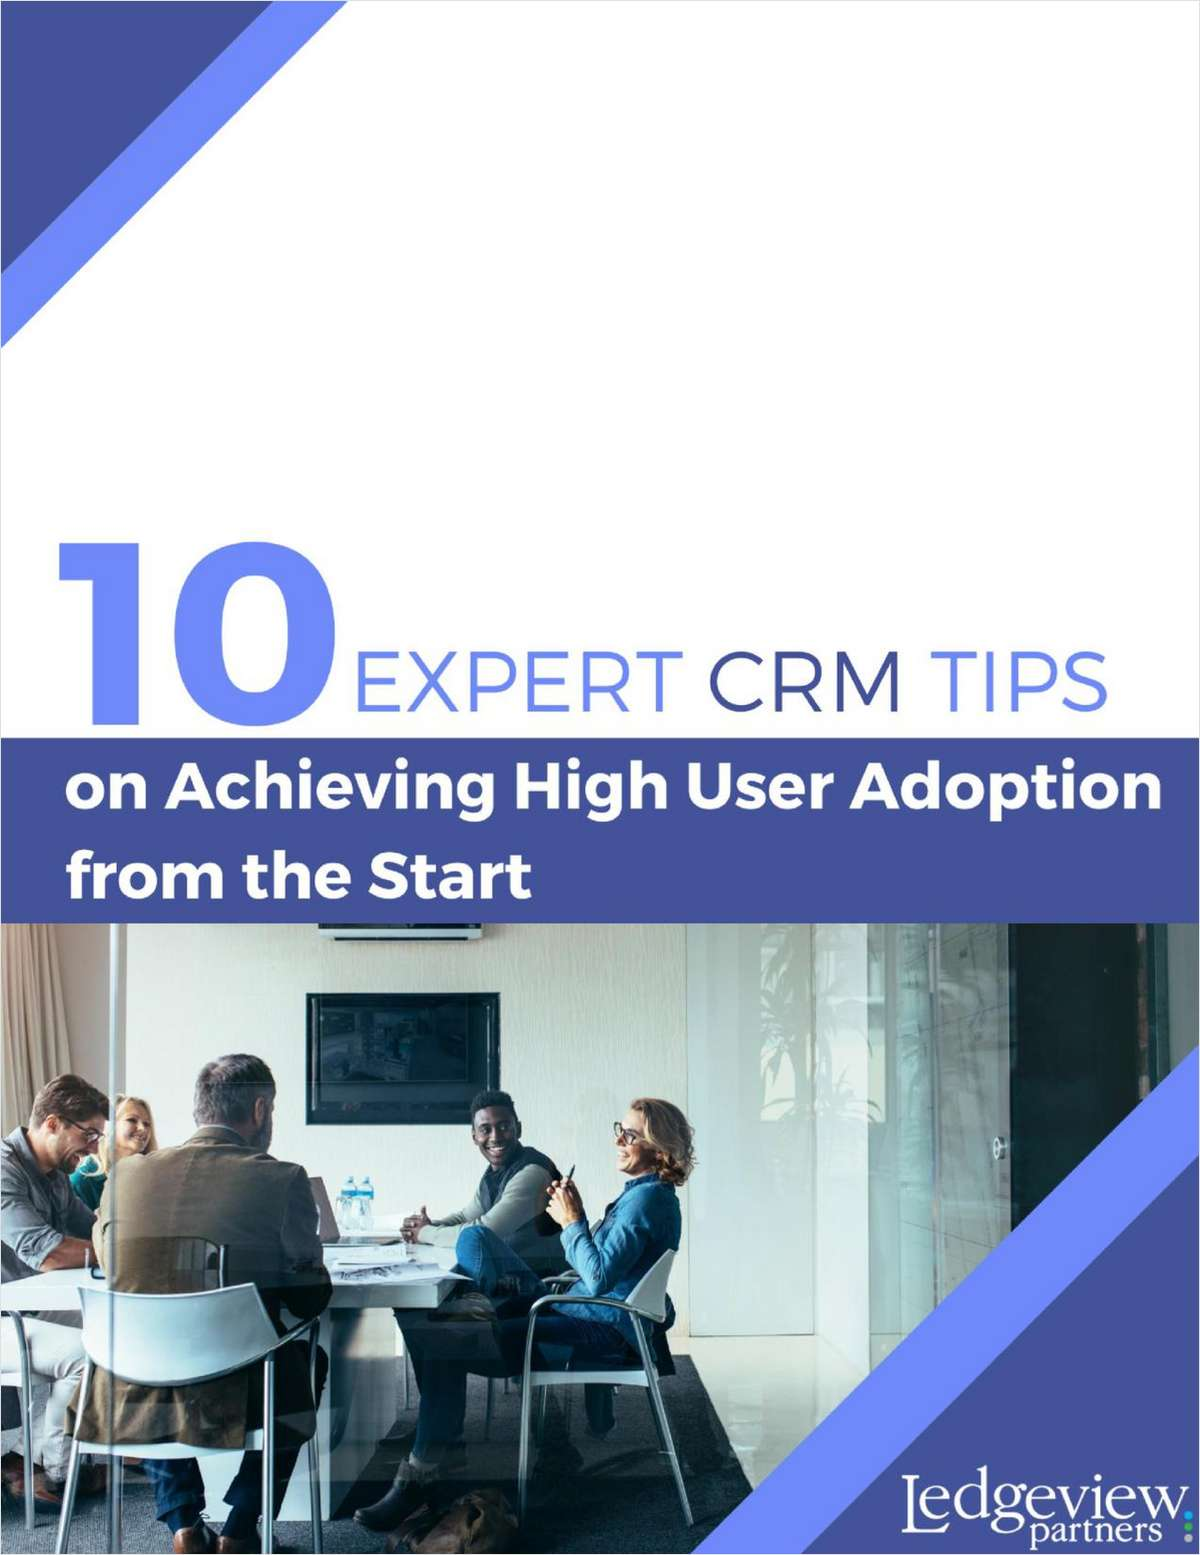 10 Expert CRM Tips on Achieving High User Adoption from the Start